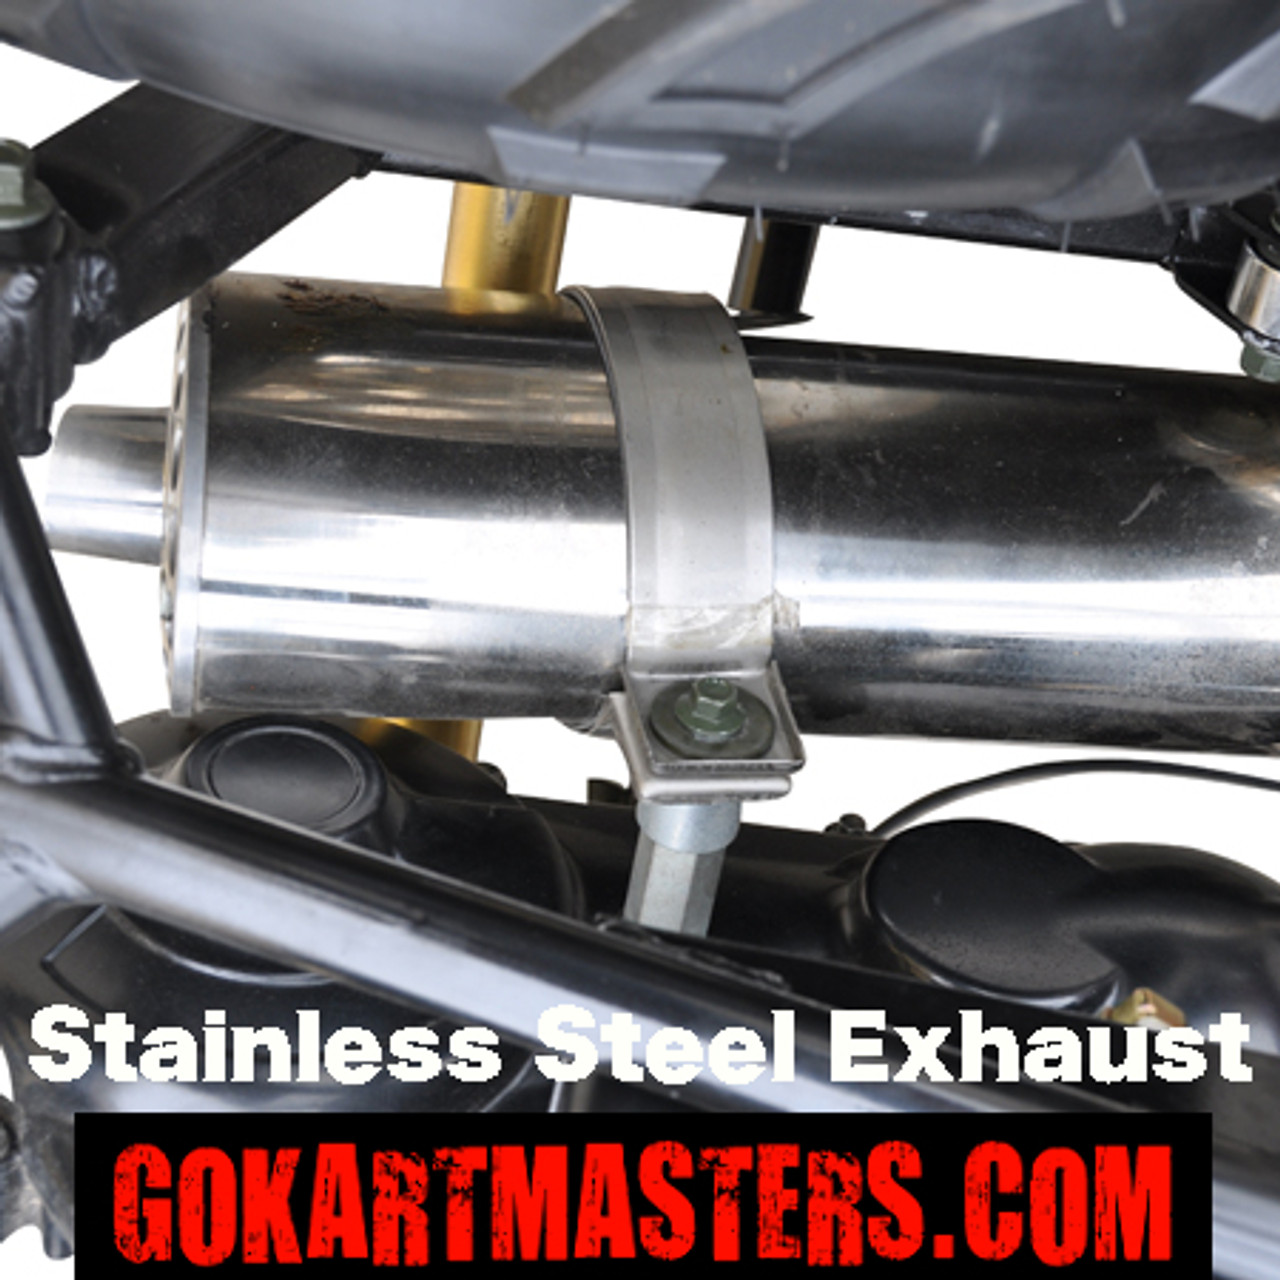 TrailMaster 150 XRX Go-Kart - Stainless Steel Exhaust